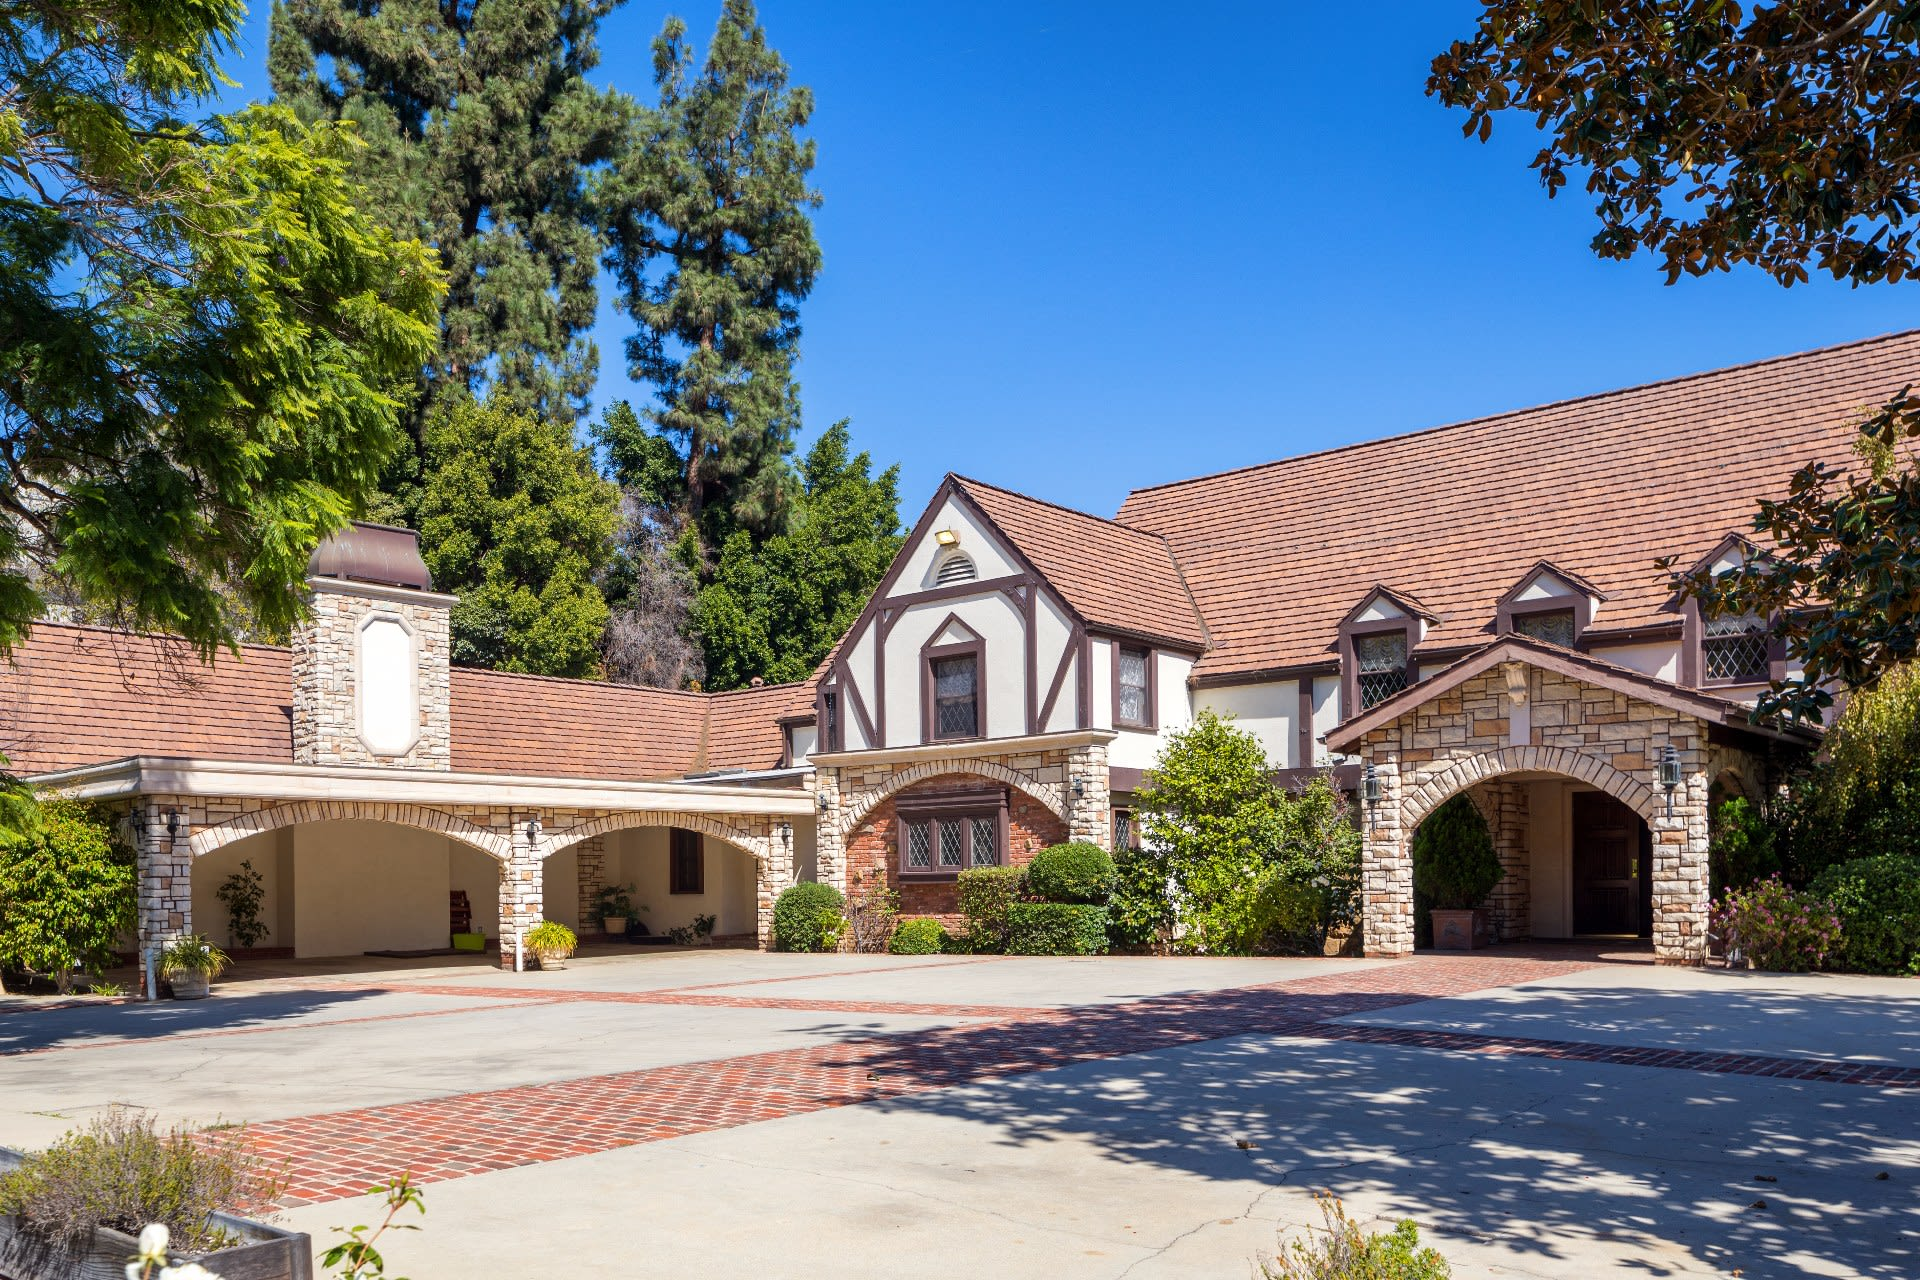 Condominium for Sale at 144 Monovale Dr 144 Monovale Dr Beverly Hills, California,90210 United States